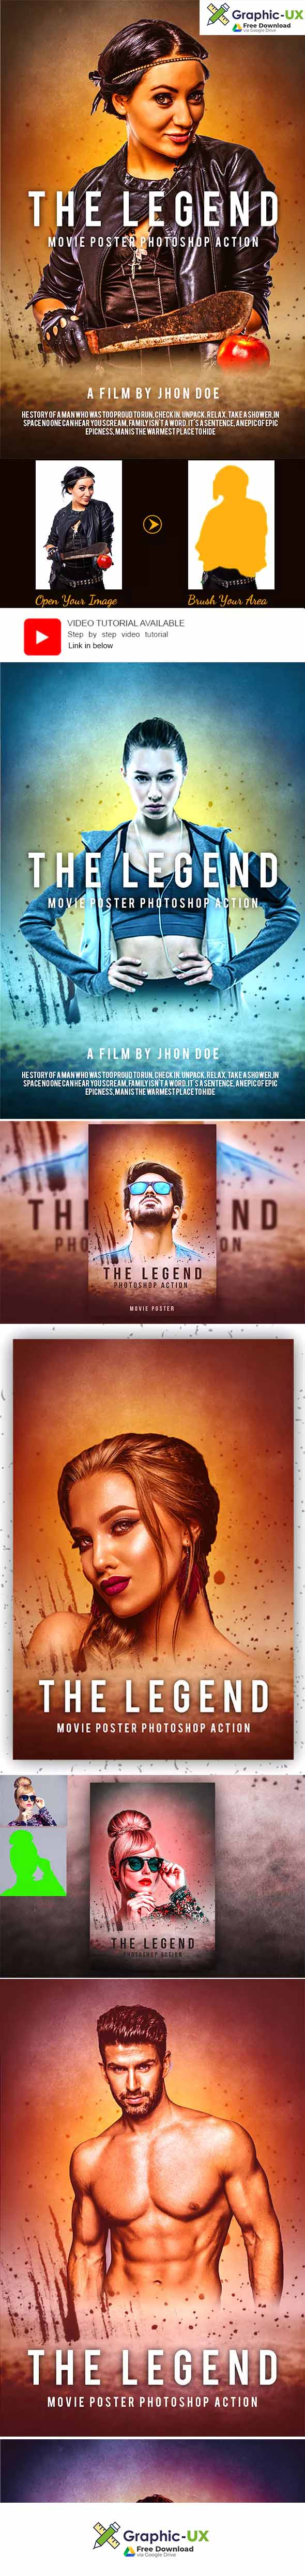 The Legend Photoshop Action – GraphicUX